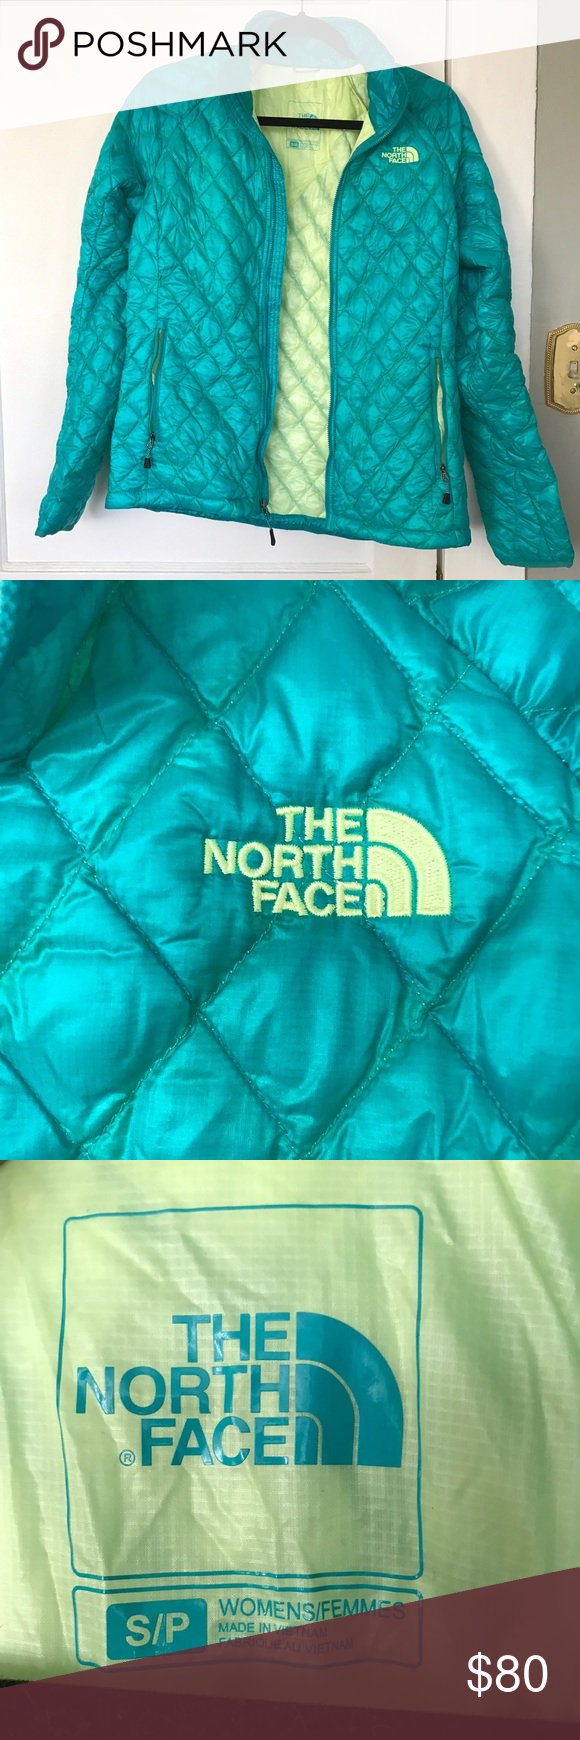 80's INSPIRED NORTH FACE PUFFER JACKET! Lightweight! Perfect for layering. Never worn!!!! Sz Sm. An 80's inspired puffy jacket with blue &green details! North Face Jackets & Coats Puffers